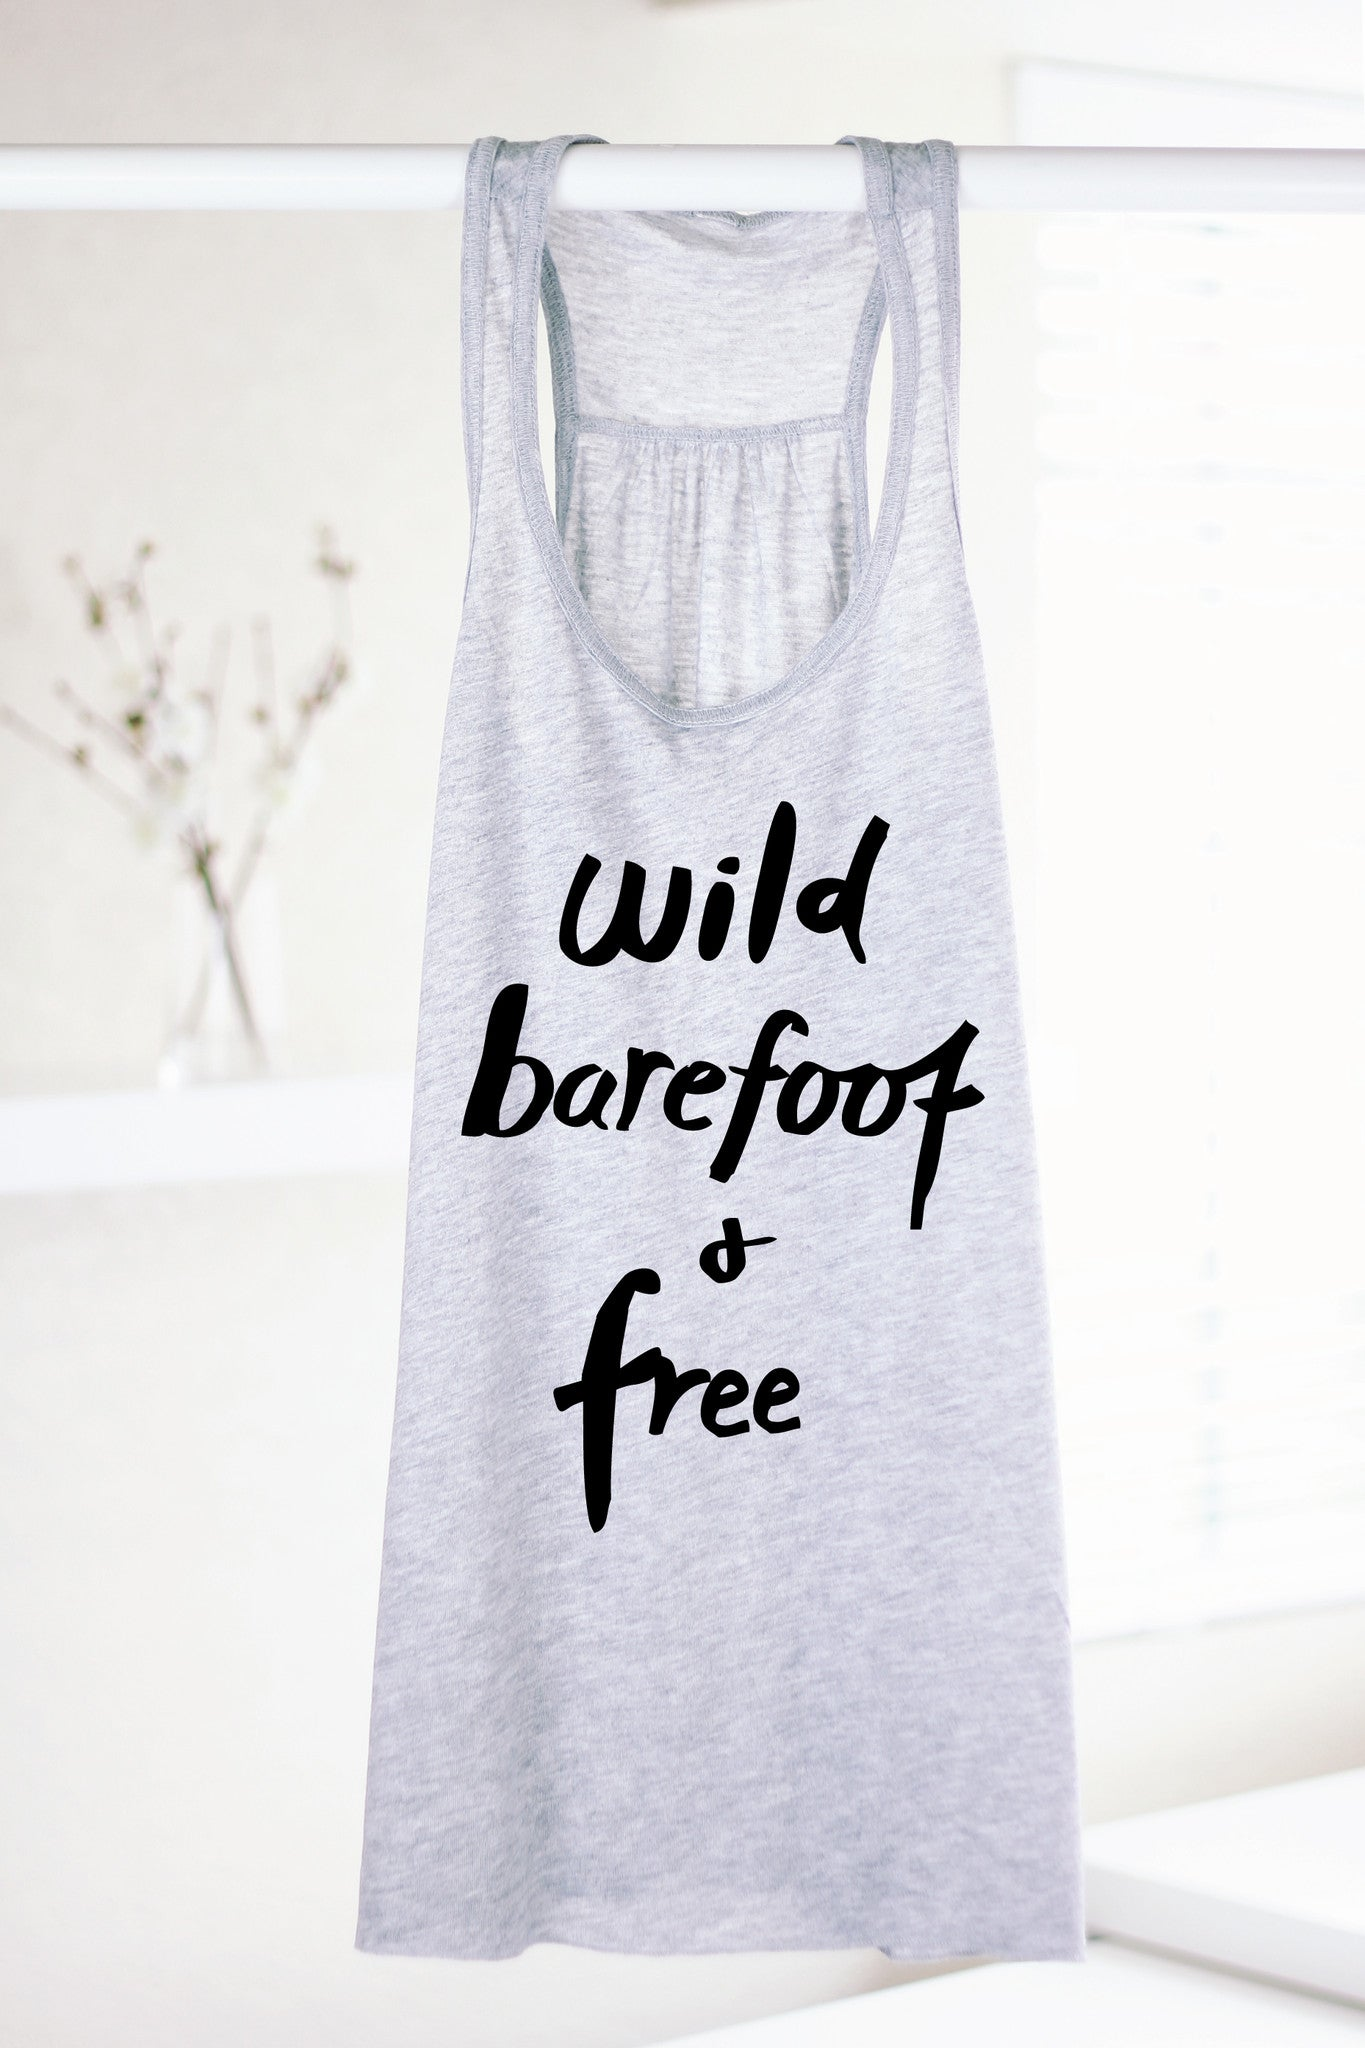 59e0bb7a191fd WILD BAREFOOT AND FREE - FLOWY GRAY - Arima Yoga Wear - Yoga Clothes ...